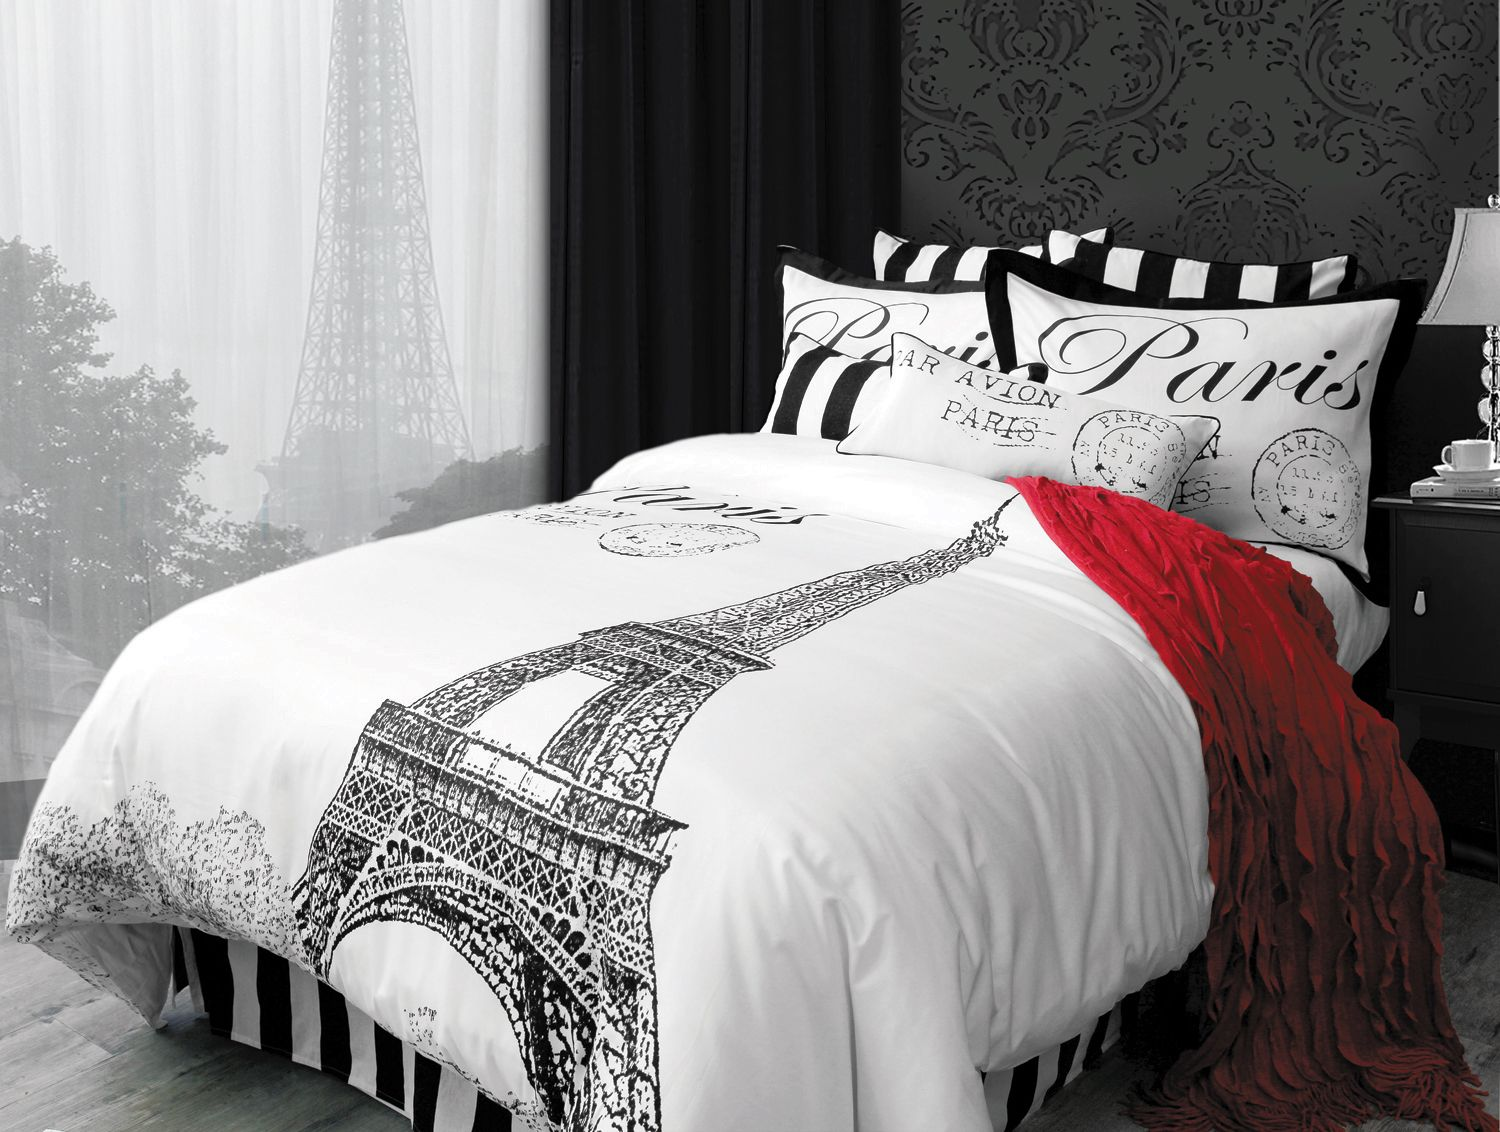 Gentil A Fabulous Trip Abroad Is Waiting For You As You Cover Your Bed With The  Beautiful Paris Inspired Pattern. The Large Eiffel Tower, ...